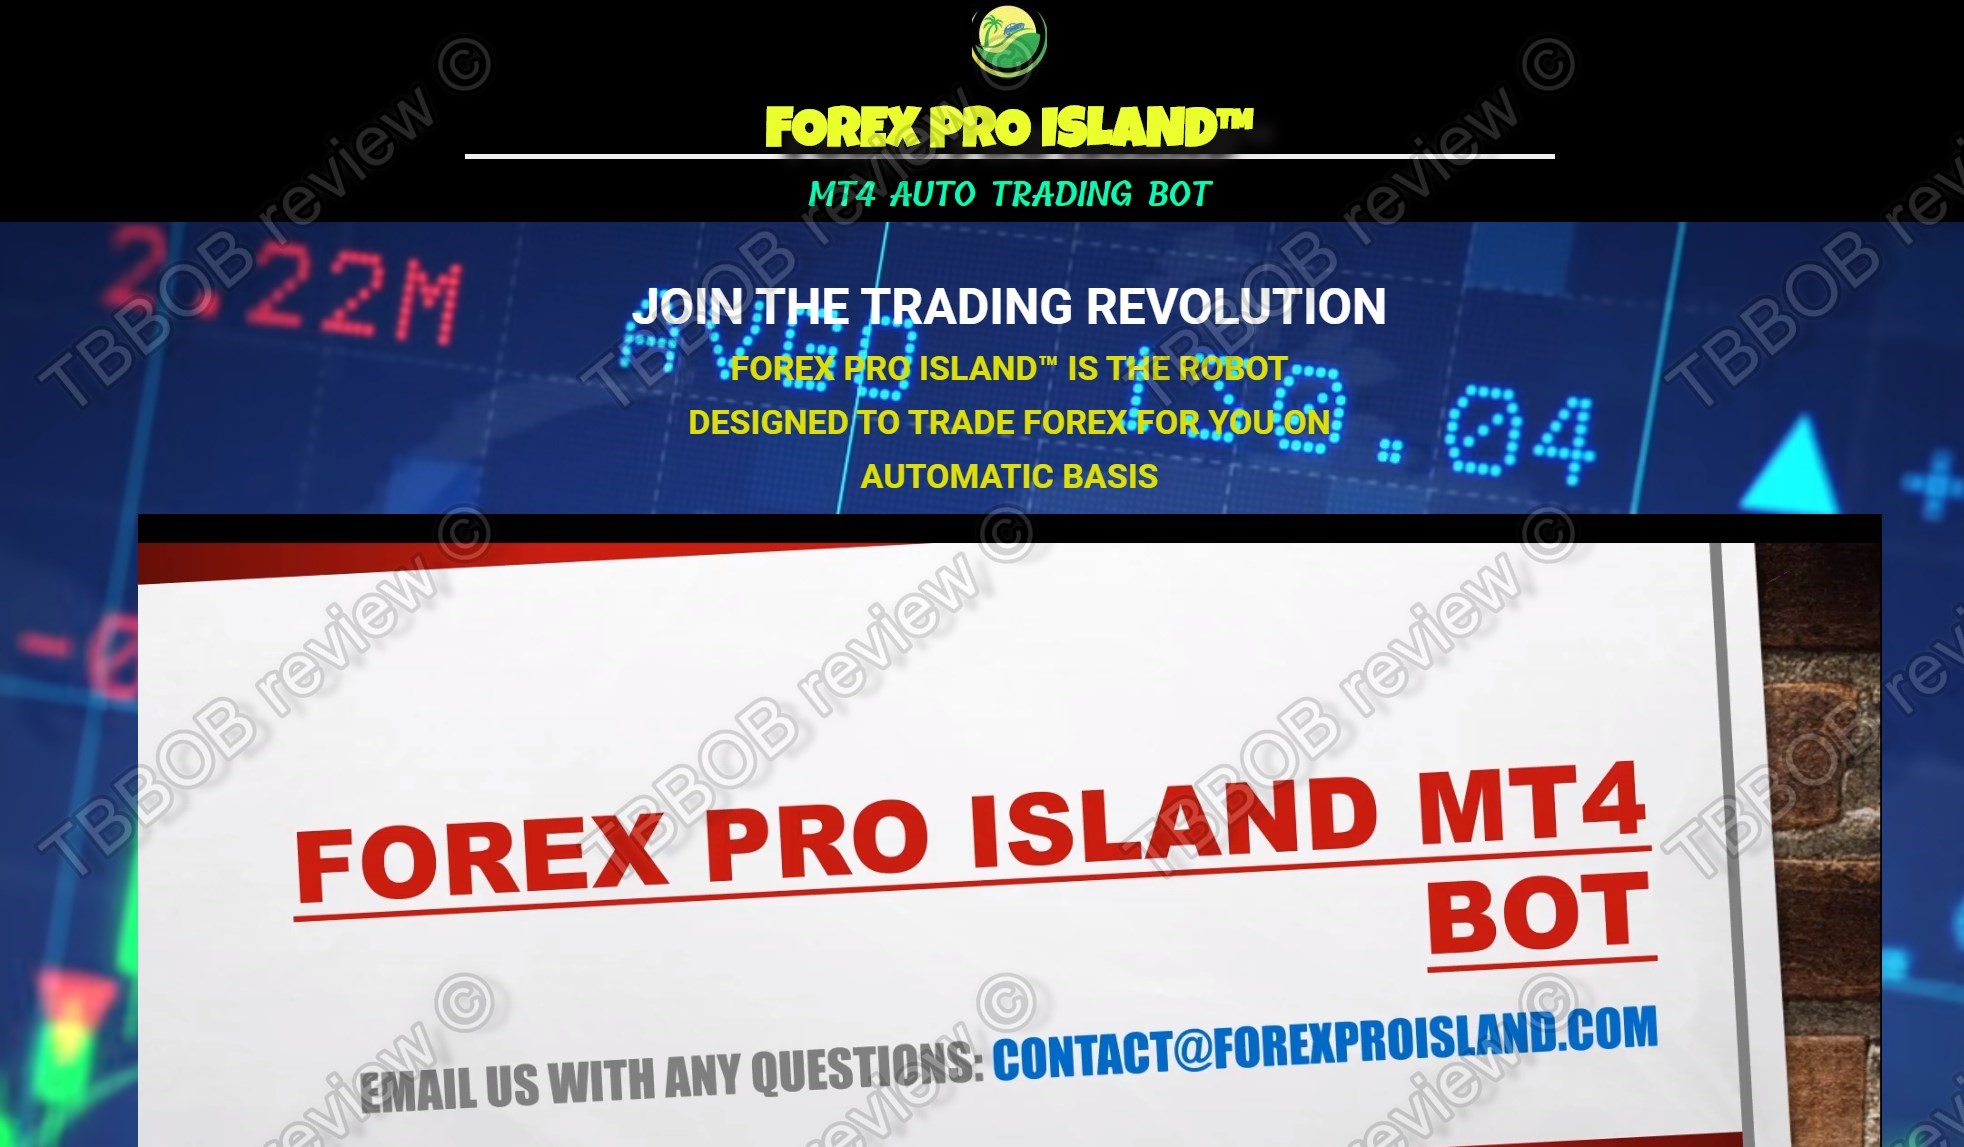 Island forex trading malcolm pryors spread betting techniques dvd burning